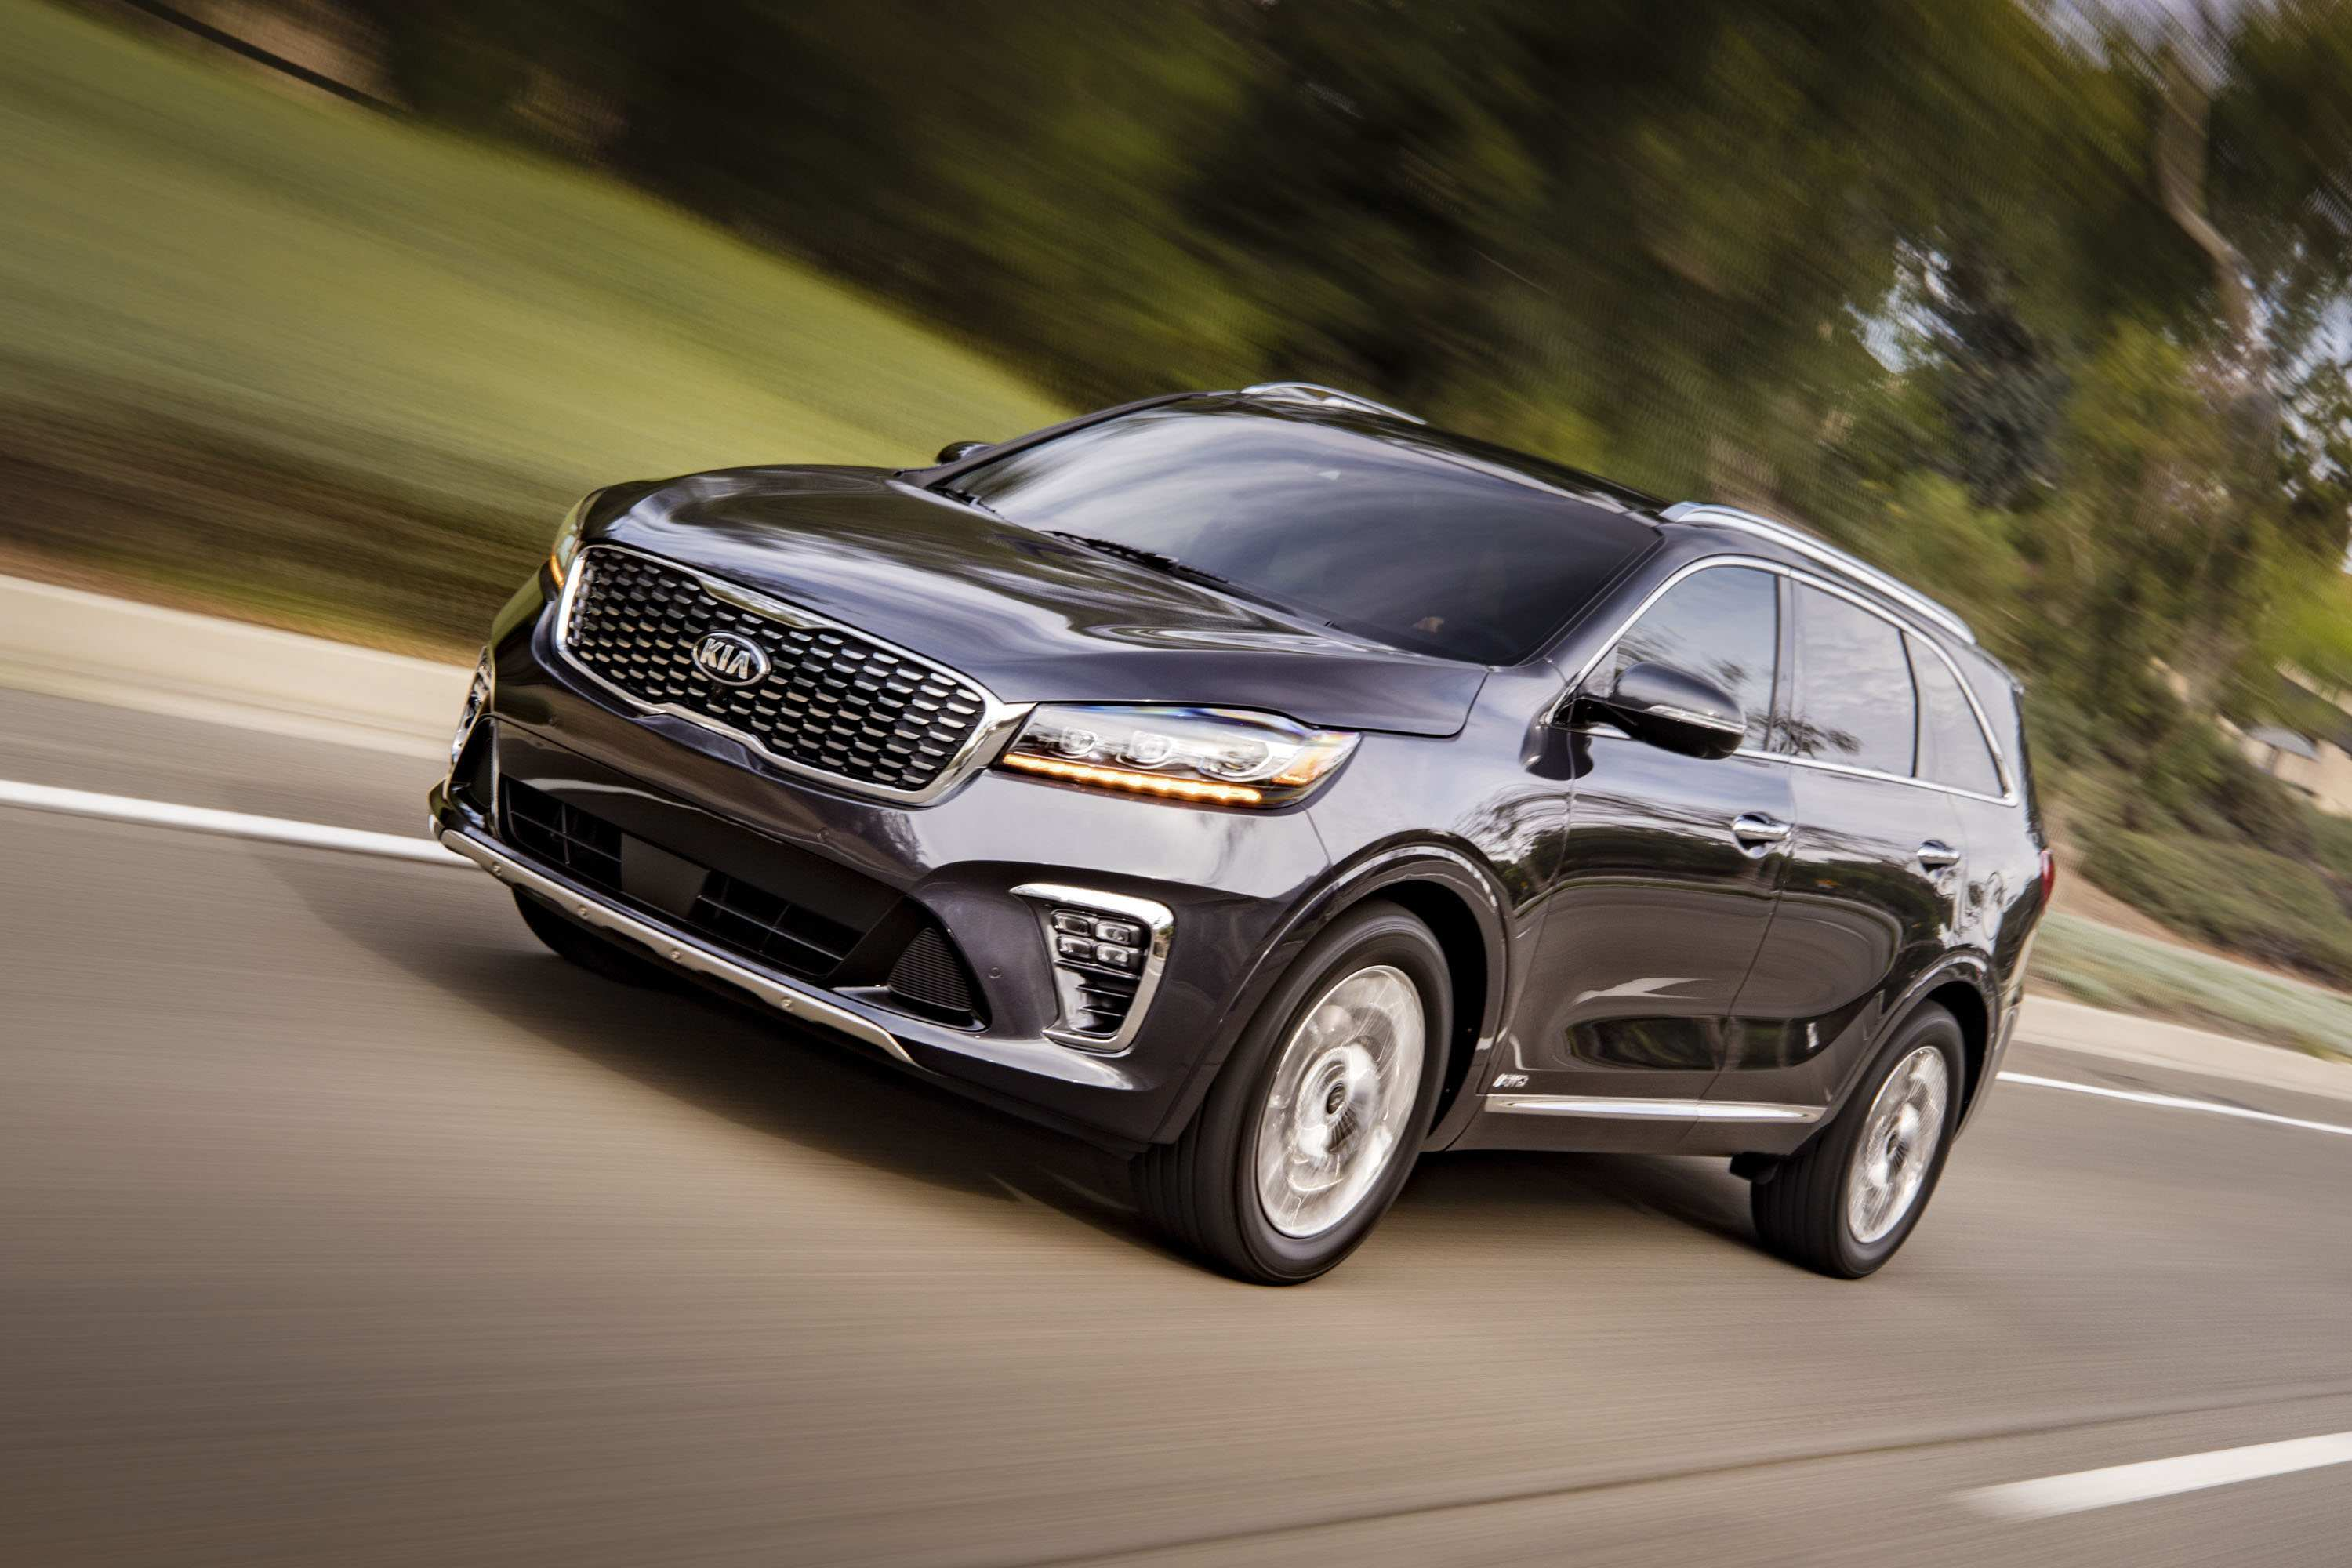 81 Best Review 2020 Kia Sorento Brochure Interior for 2020 Kia Sorento Brochure